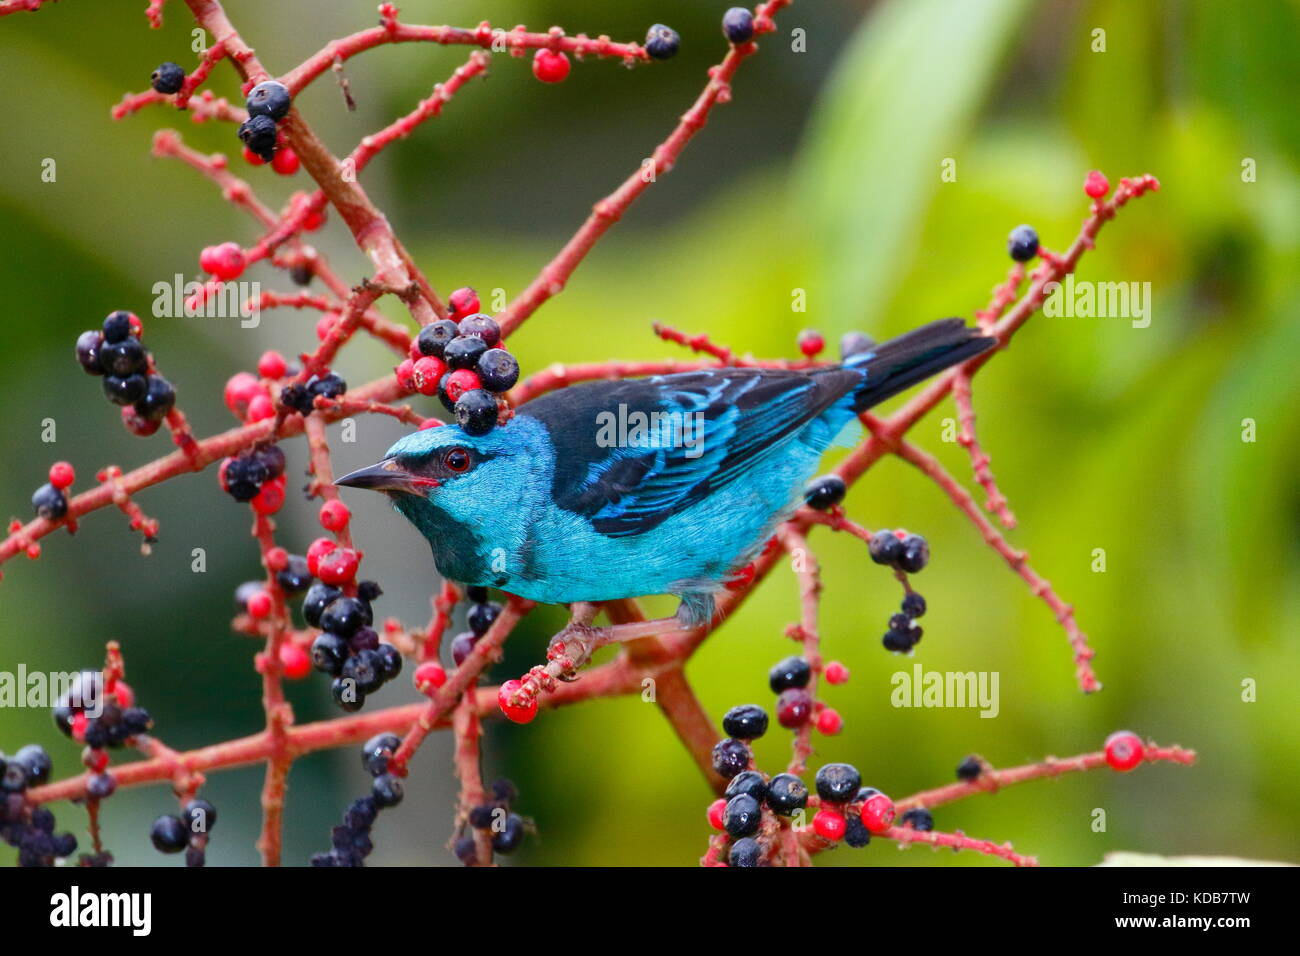 A blue dacnis or turquoise honeycreeper, Dacnis cayana, foraging on melastome fruit. - Stock Image